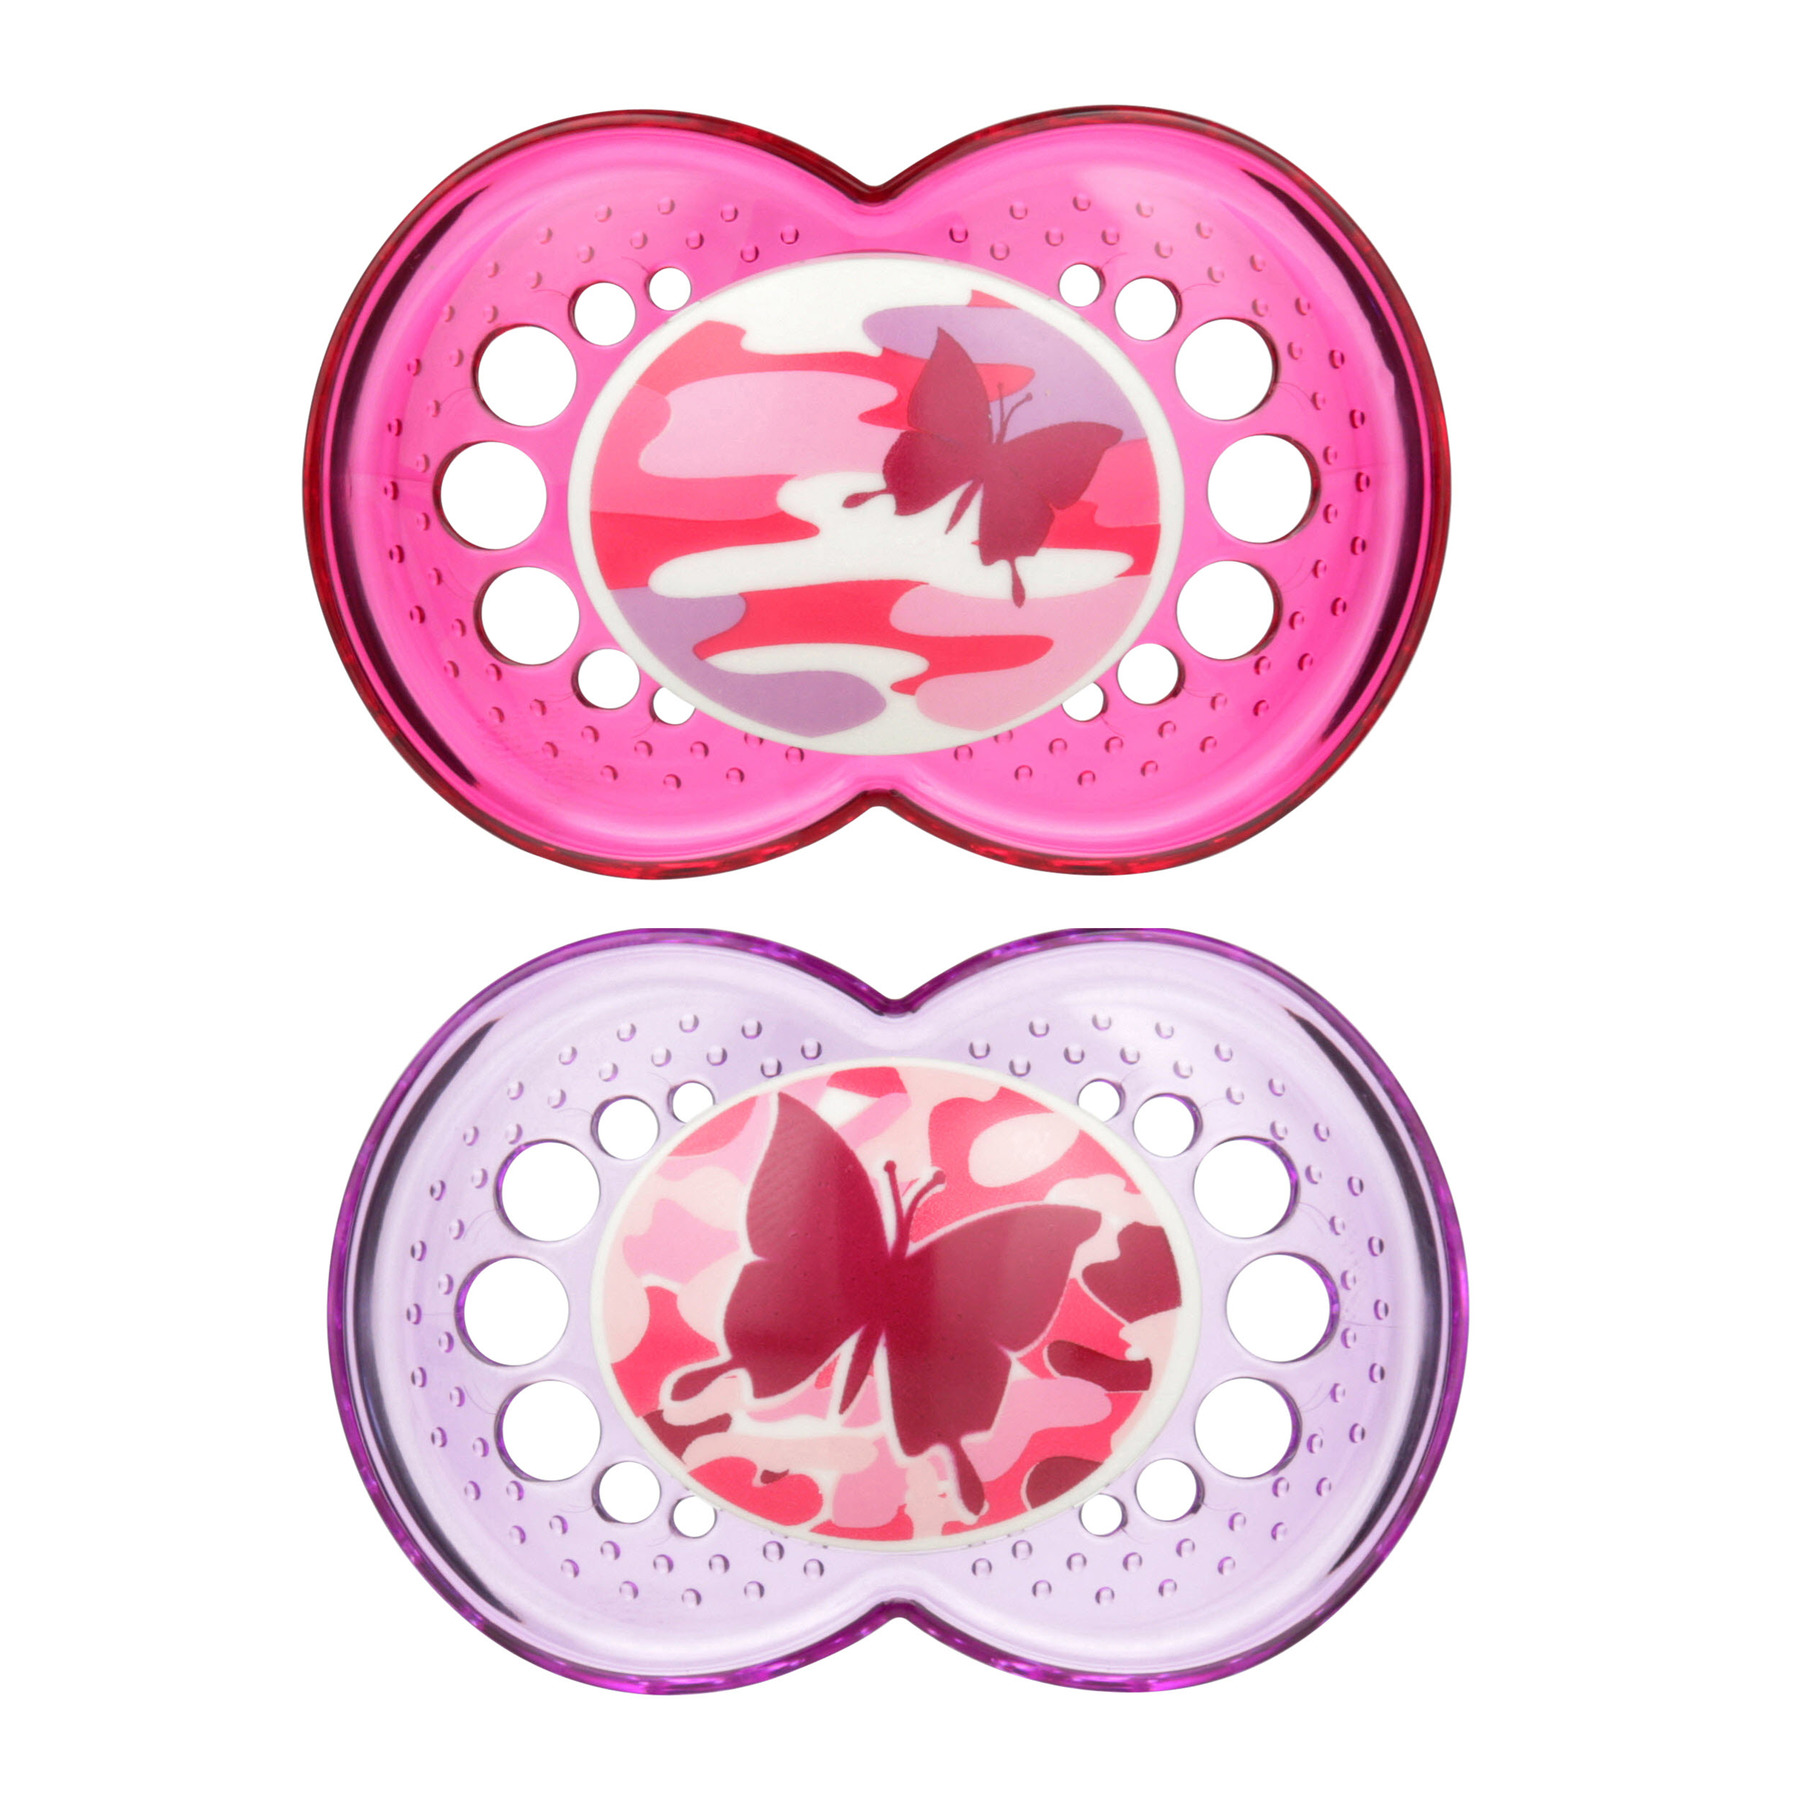 MAM Camo Collection Pacifiers, 16+ Months, Pink Camo - 2 Counts